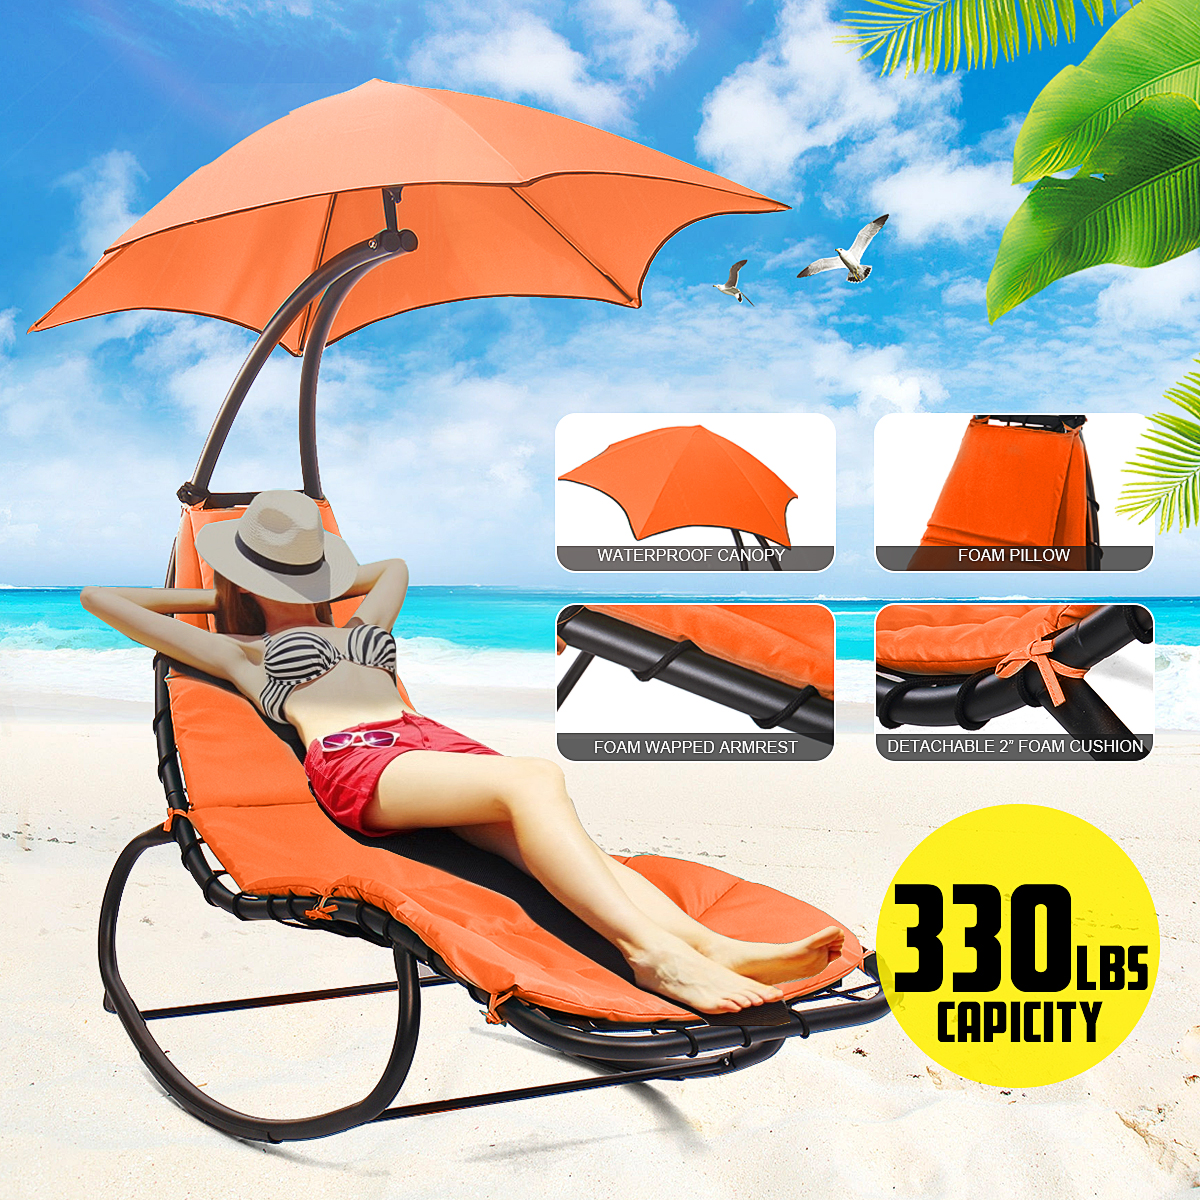 Outdoor Hanging Curved Steel Chaise Lounge Chair Swing With Built-In Pillow And Removable Canopy Swing Chair